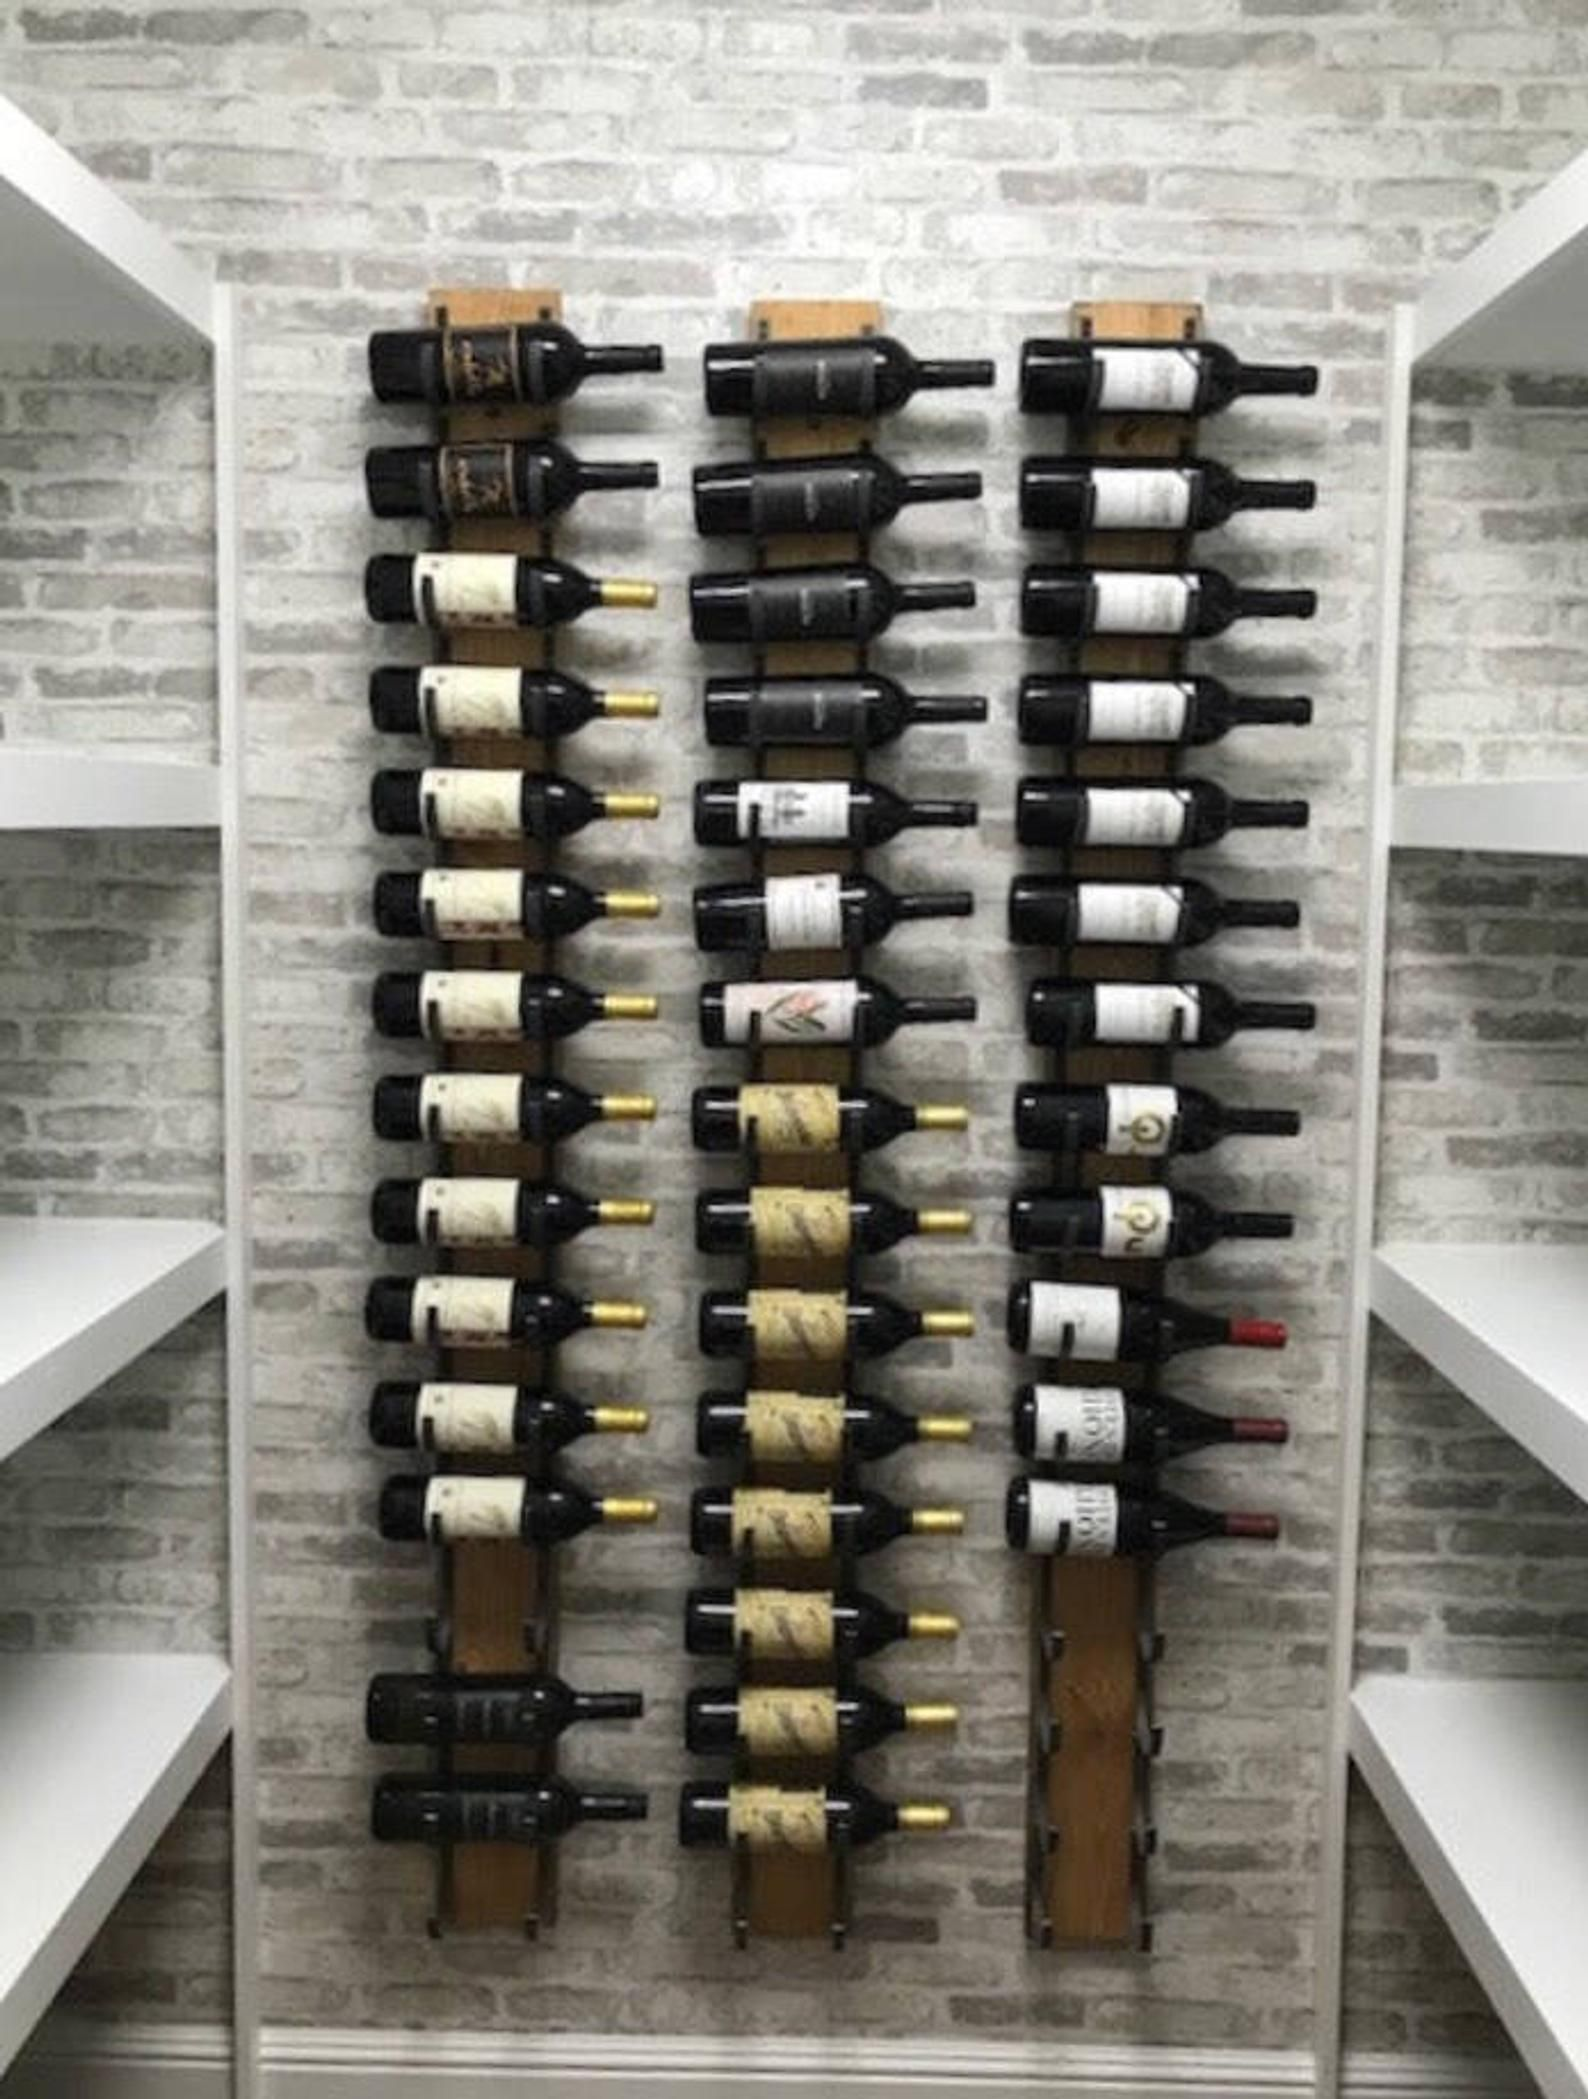 12 Bottle Wine Rack Wall Mounted Steel Wood Reclaimed Rustic Industrial Armarios De Vino Pared De Vino Estantes De Vino